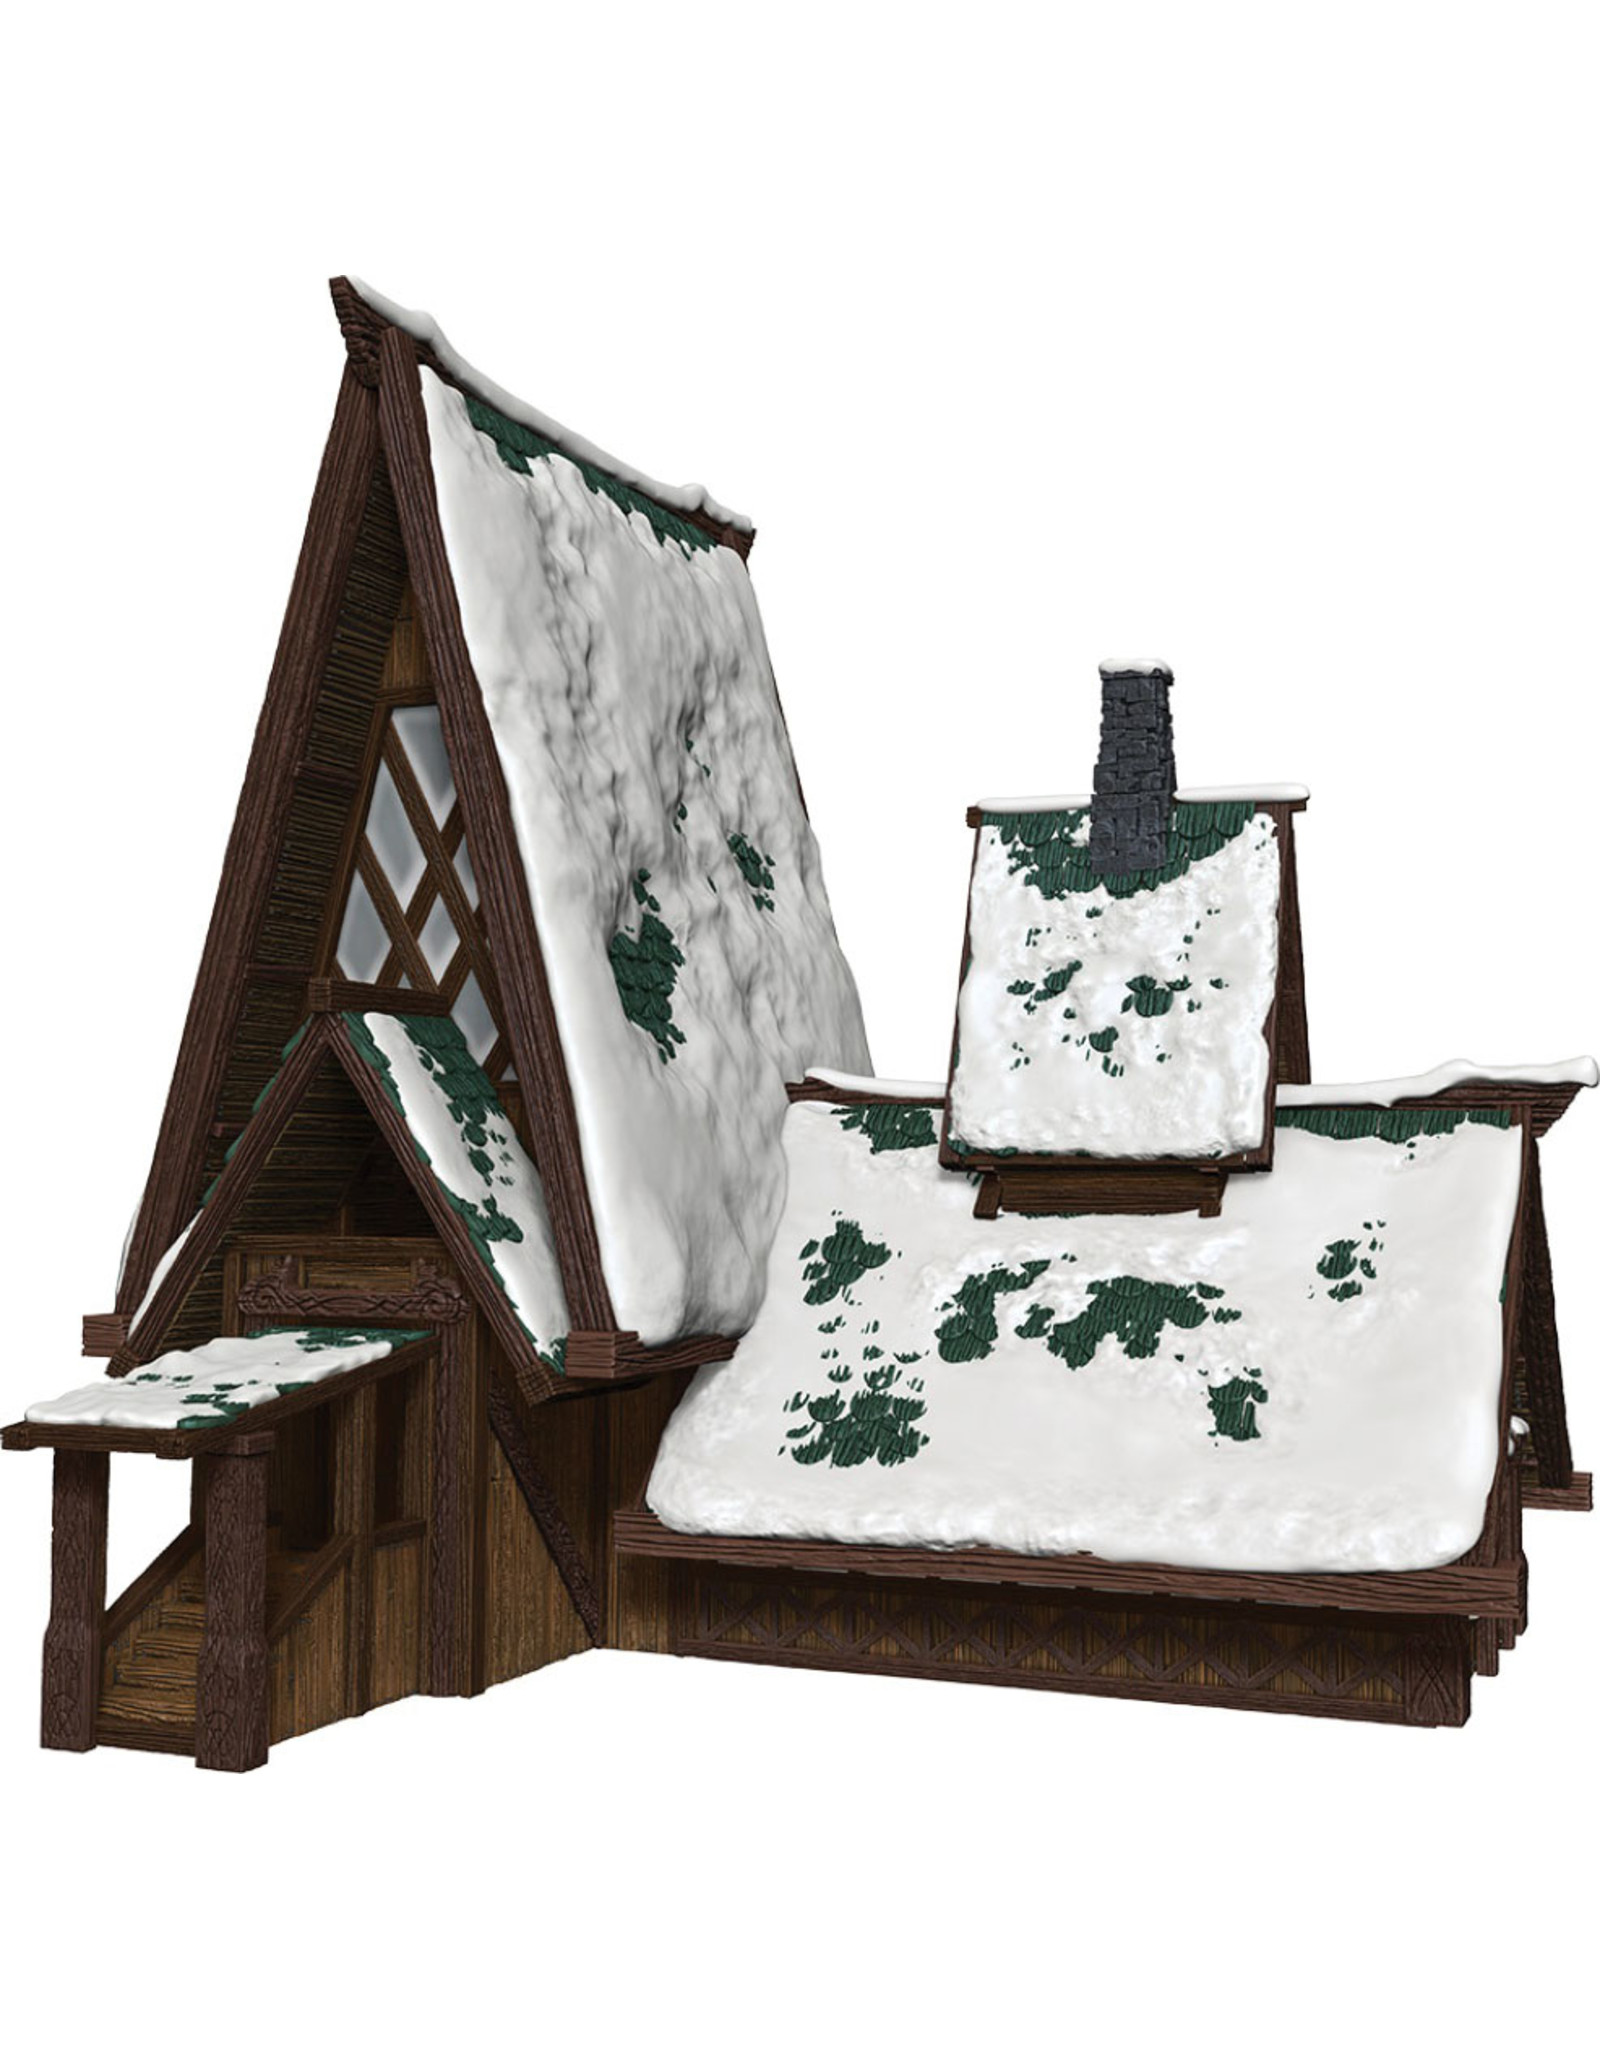 WizKids Dungeons & Dragons Fantasy Miniatures: Icons of the Realms Icewind Dale: Rime of the Frostmaiden - The Lodge Papercraft Set